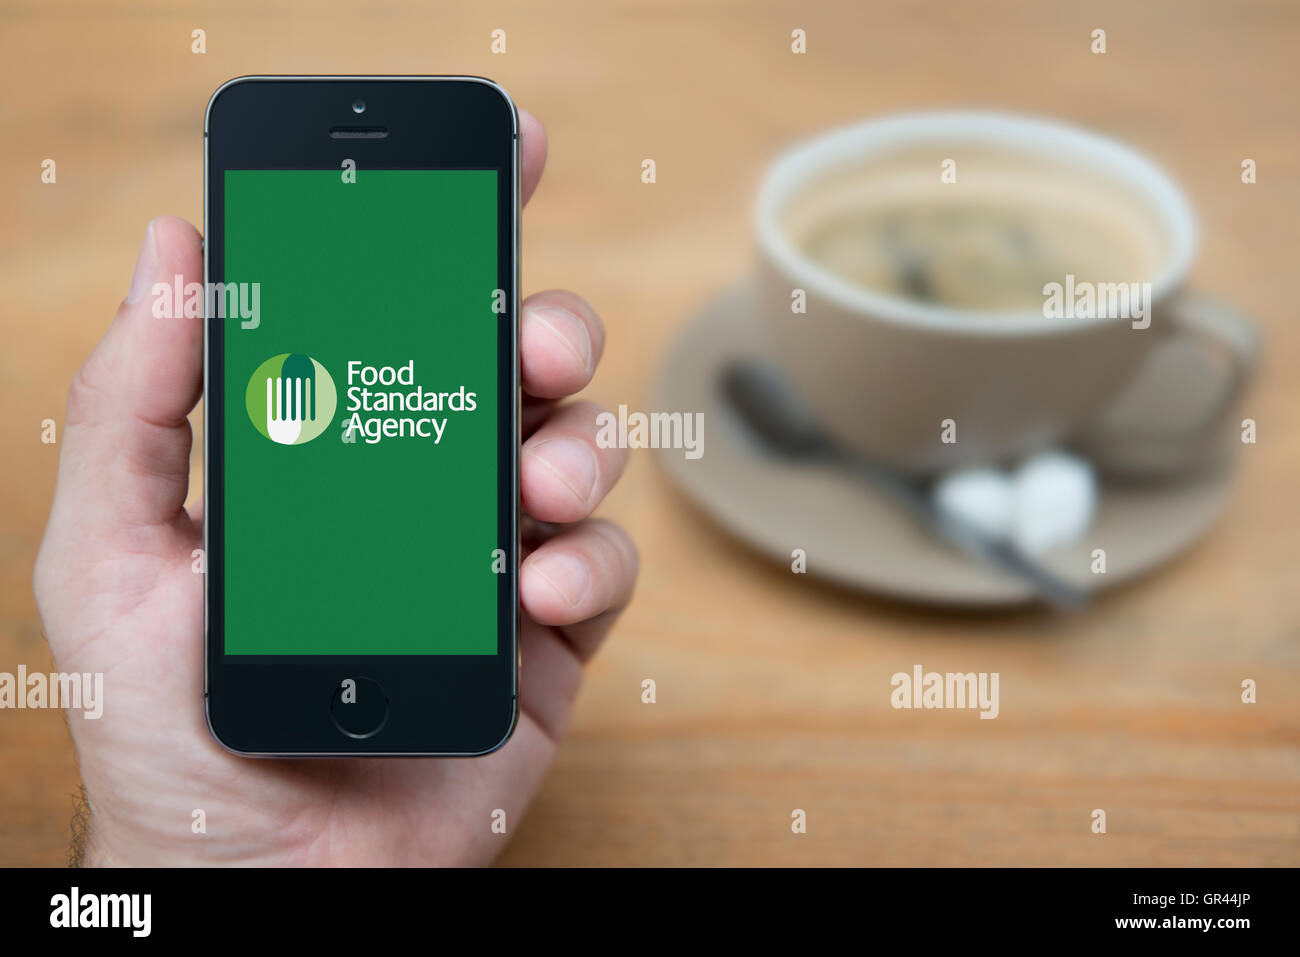 A man looks at his iPhone which displays the UK Government Food Standards Agency logo (Editorial use only). - Stock Image